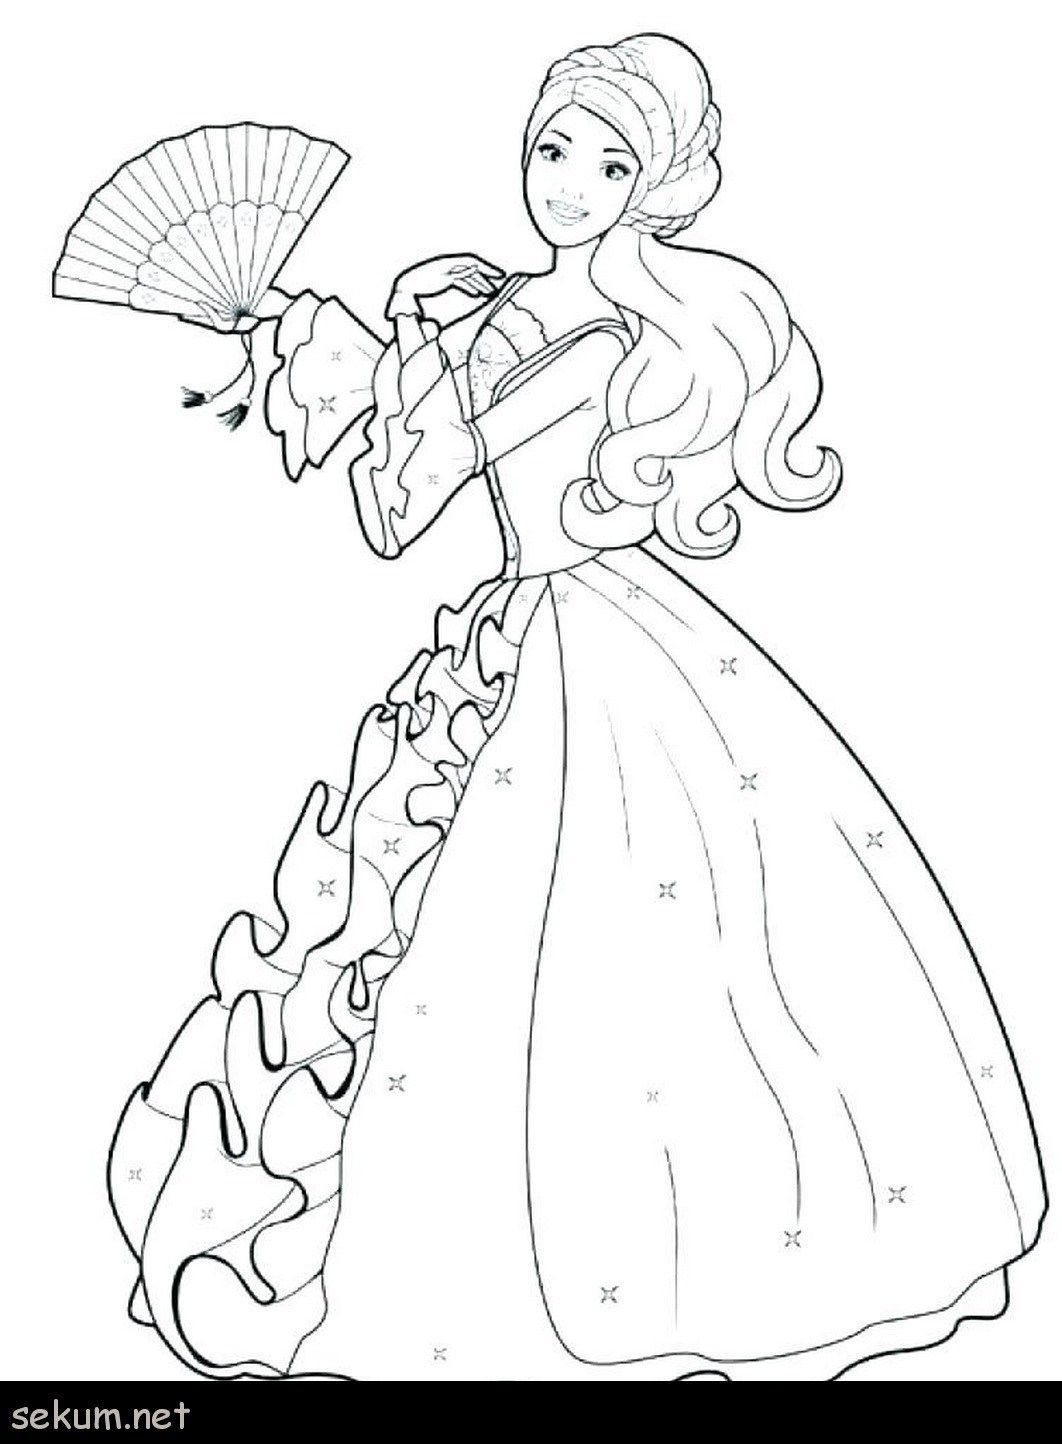 Exclusive Photo Of Barbie Princess Coloring Pages Davemelillo Com Barbie Coloring Pages Disney Princess Coloring Pages Barbie Coloring